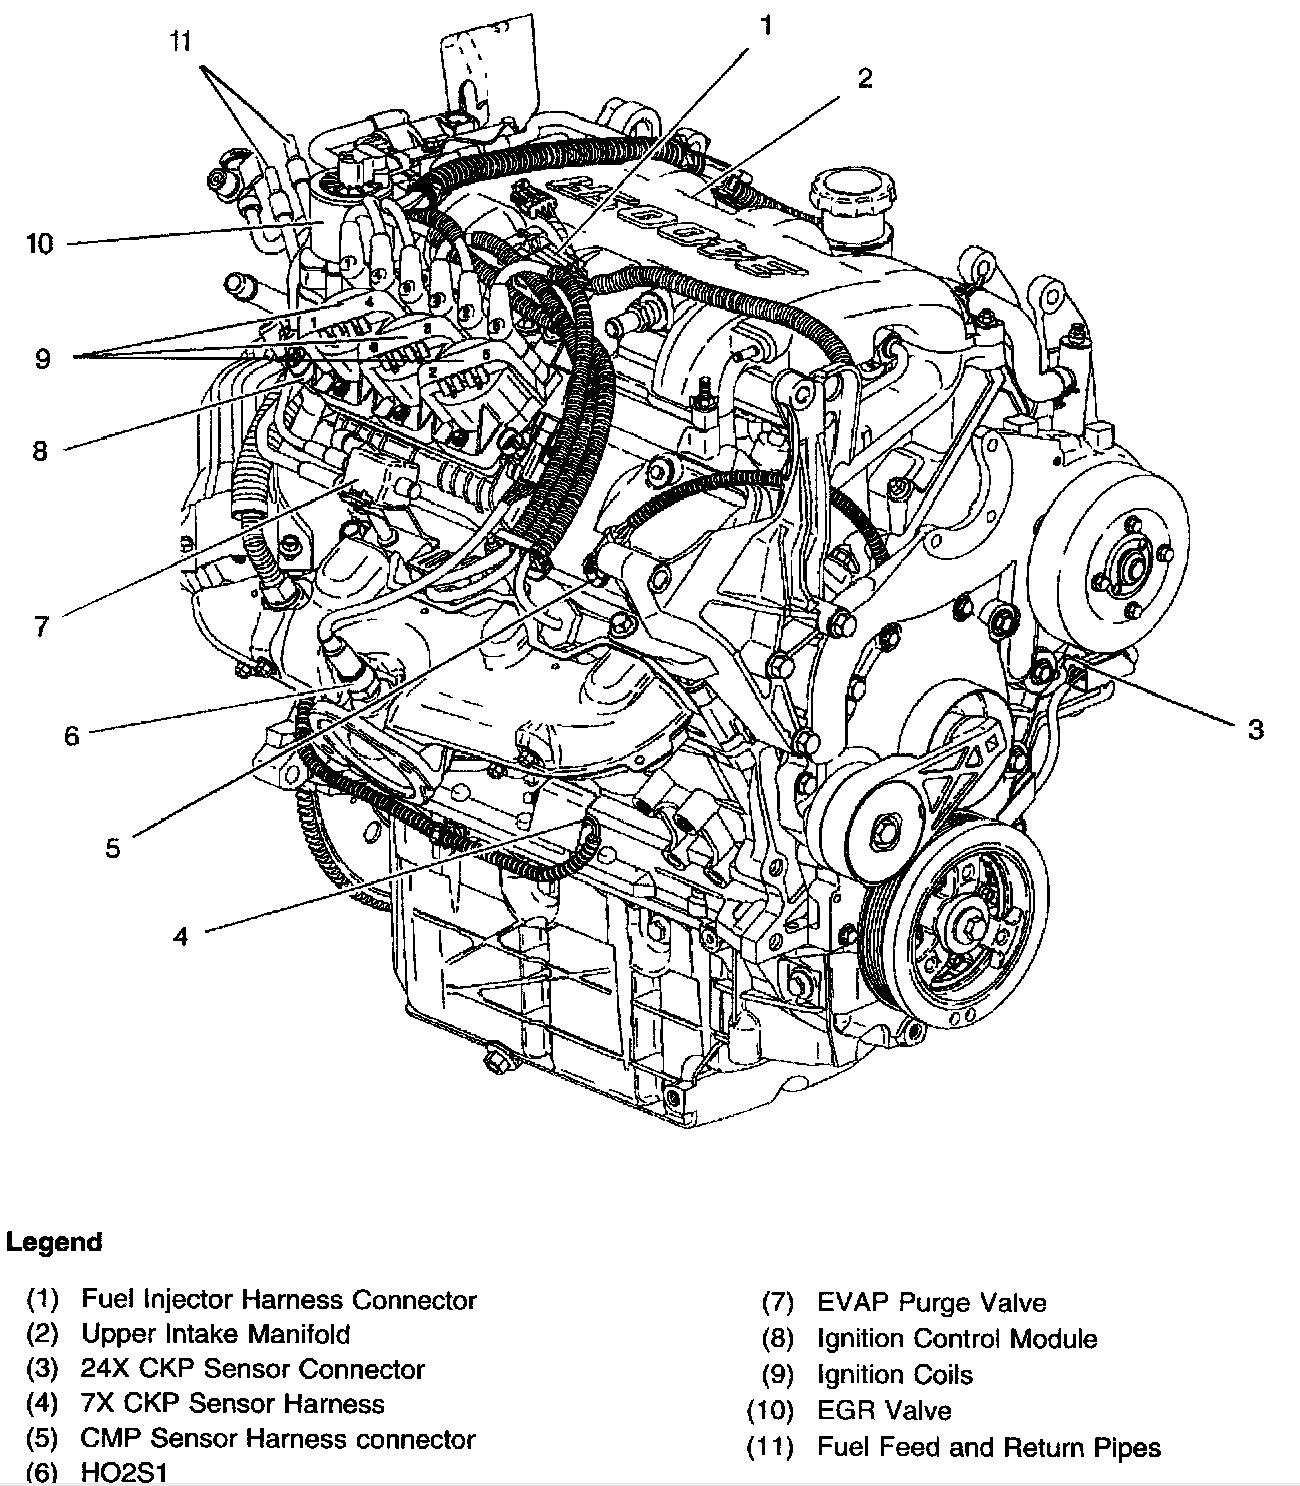 97 Pontiac Bonneville Engine Diagram - Wiring Diagram Networks